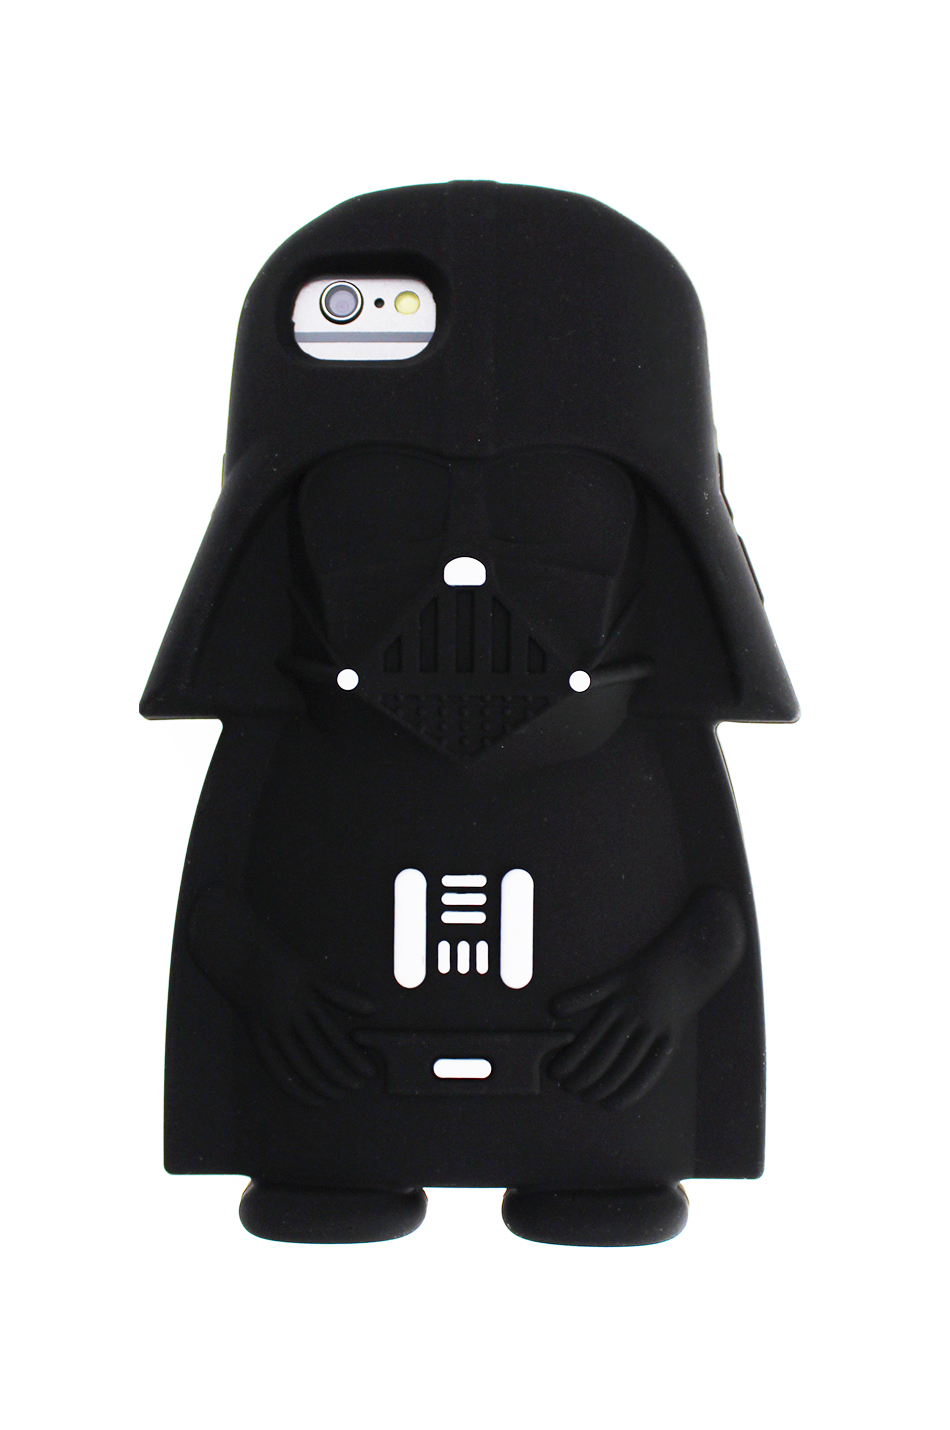 Dark Side 3D Soft Case Skal från Essentials till iPhone 6S